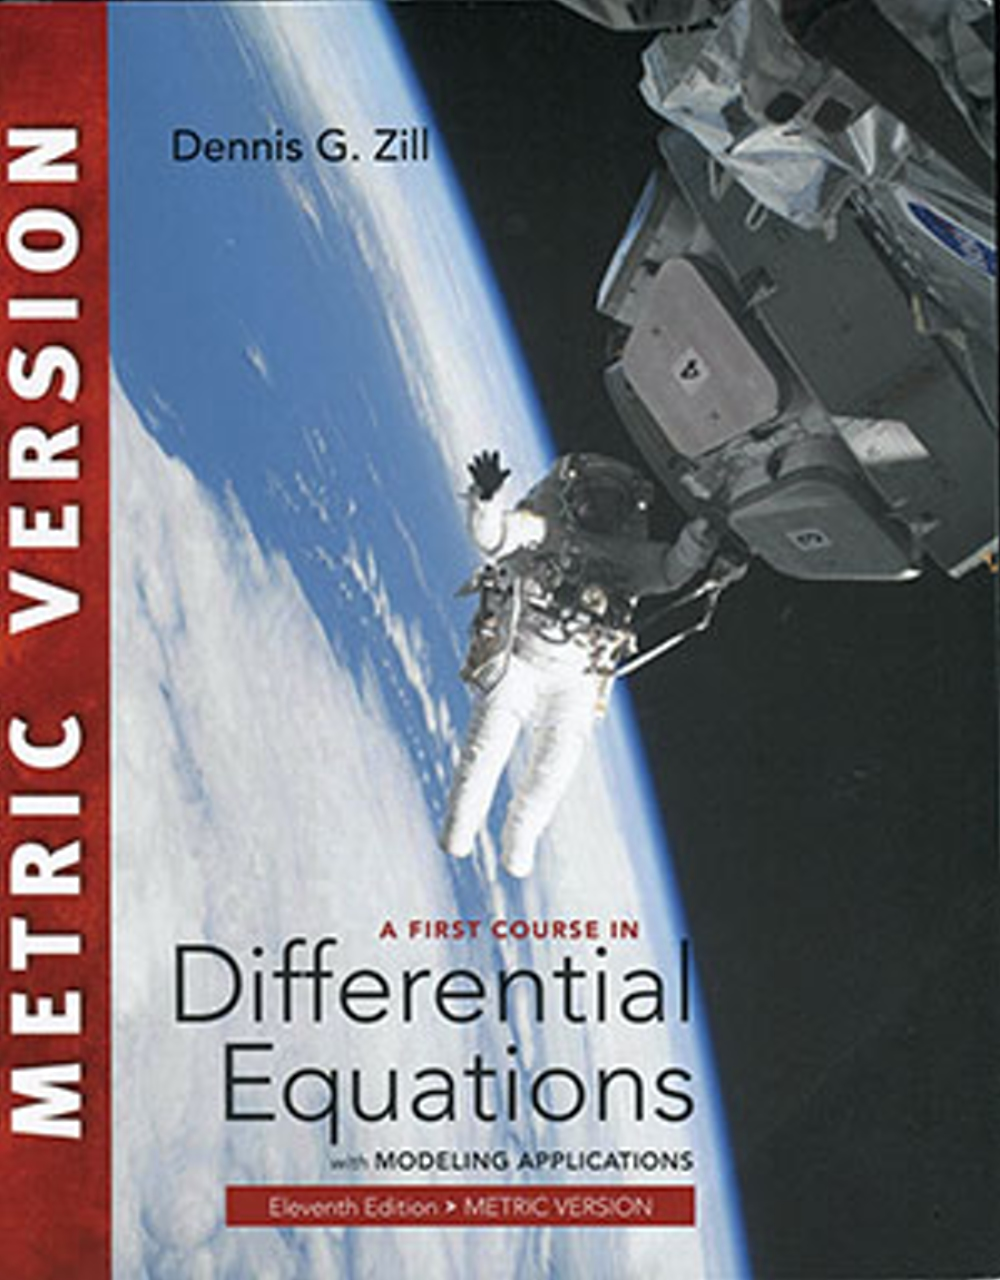 A First Course in Differential Equations with Modeling Applications (Metric Version)11版